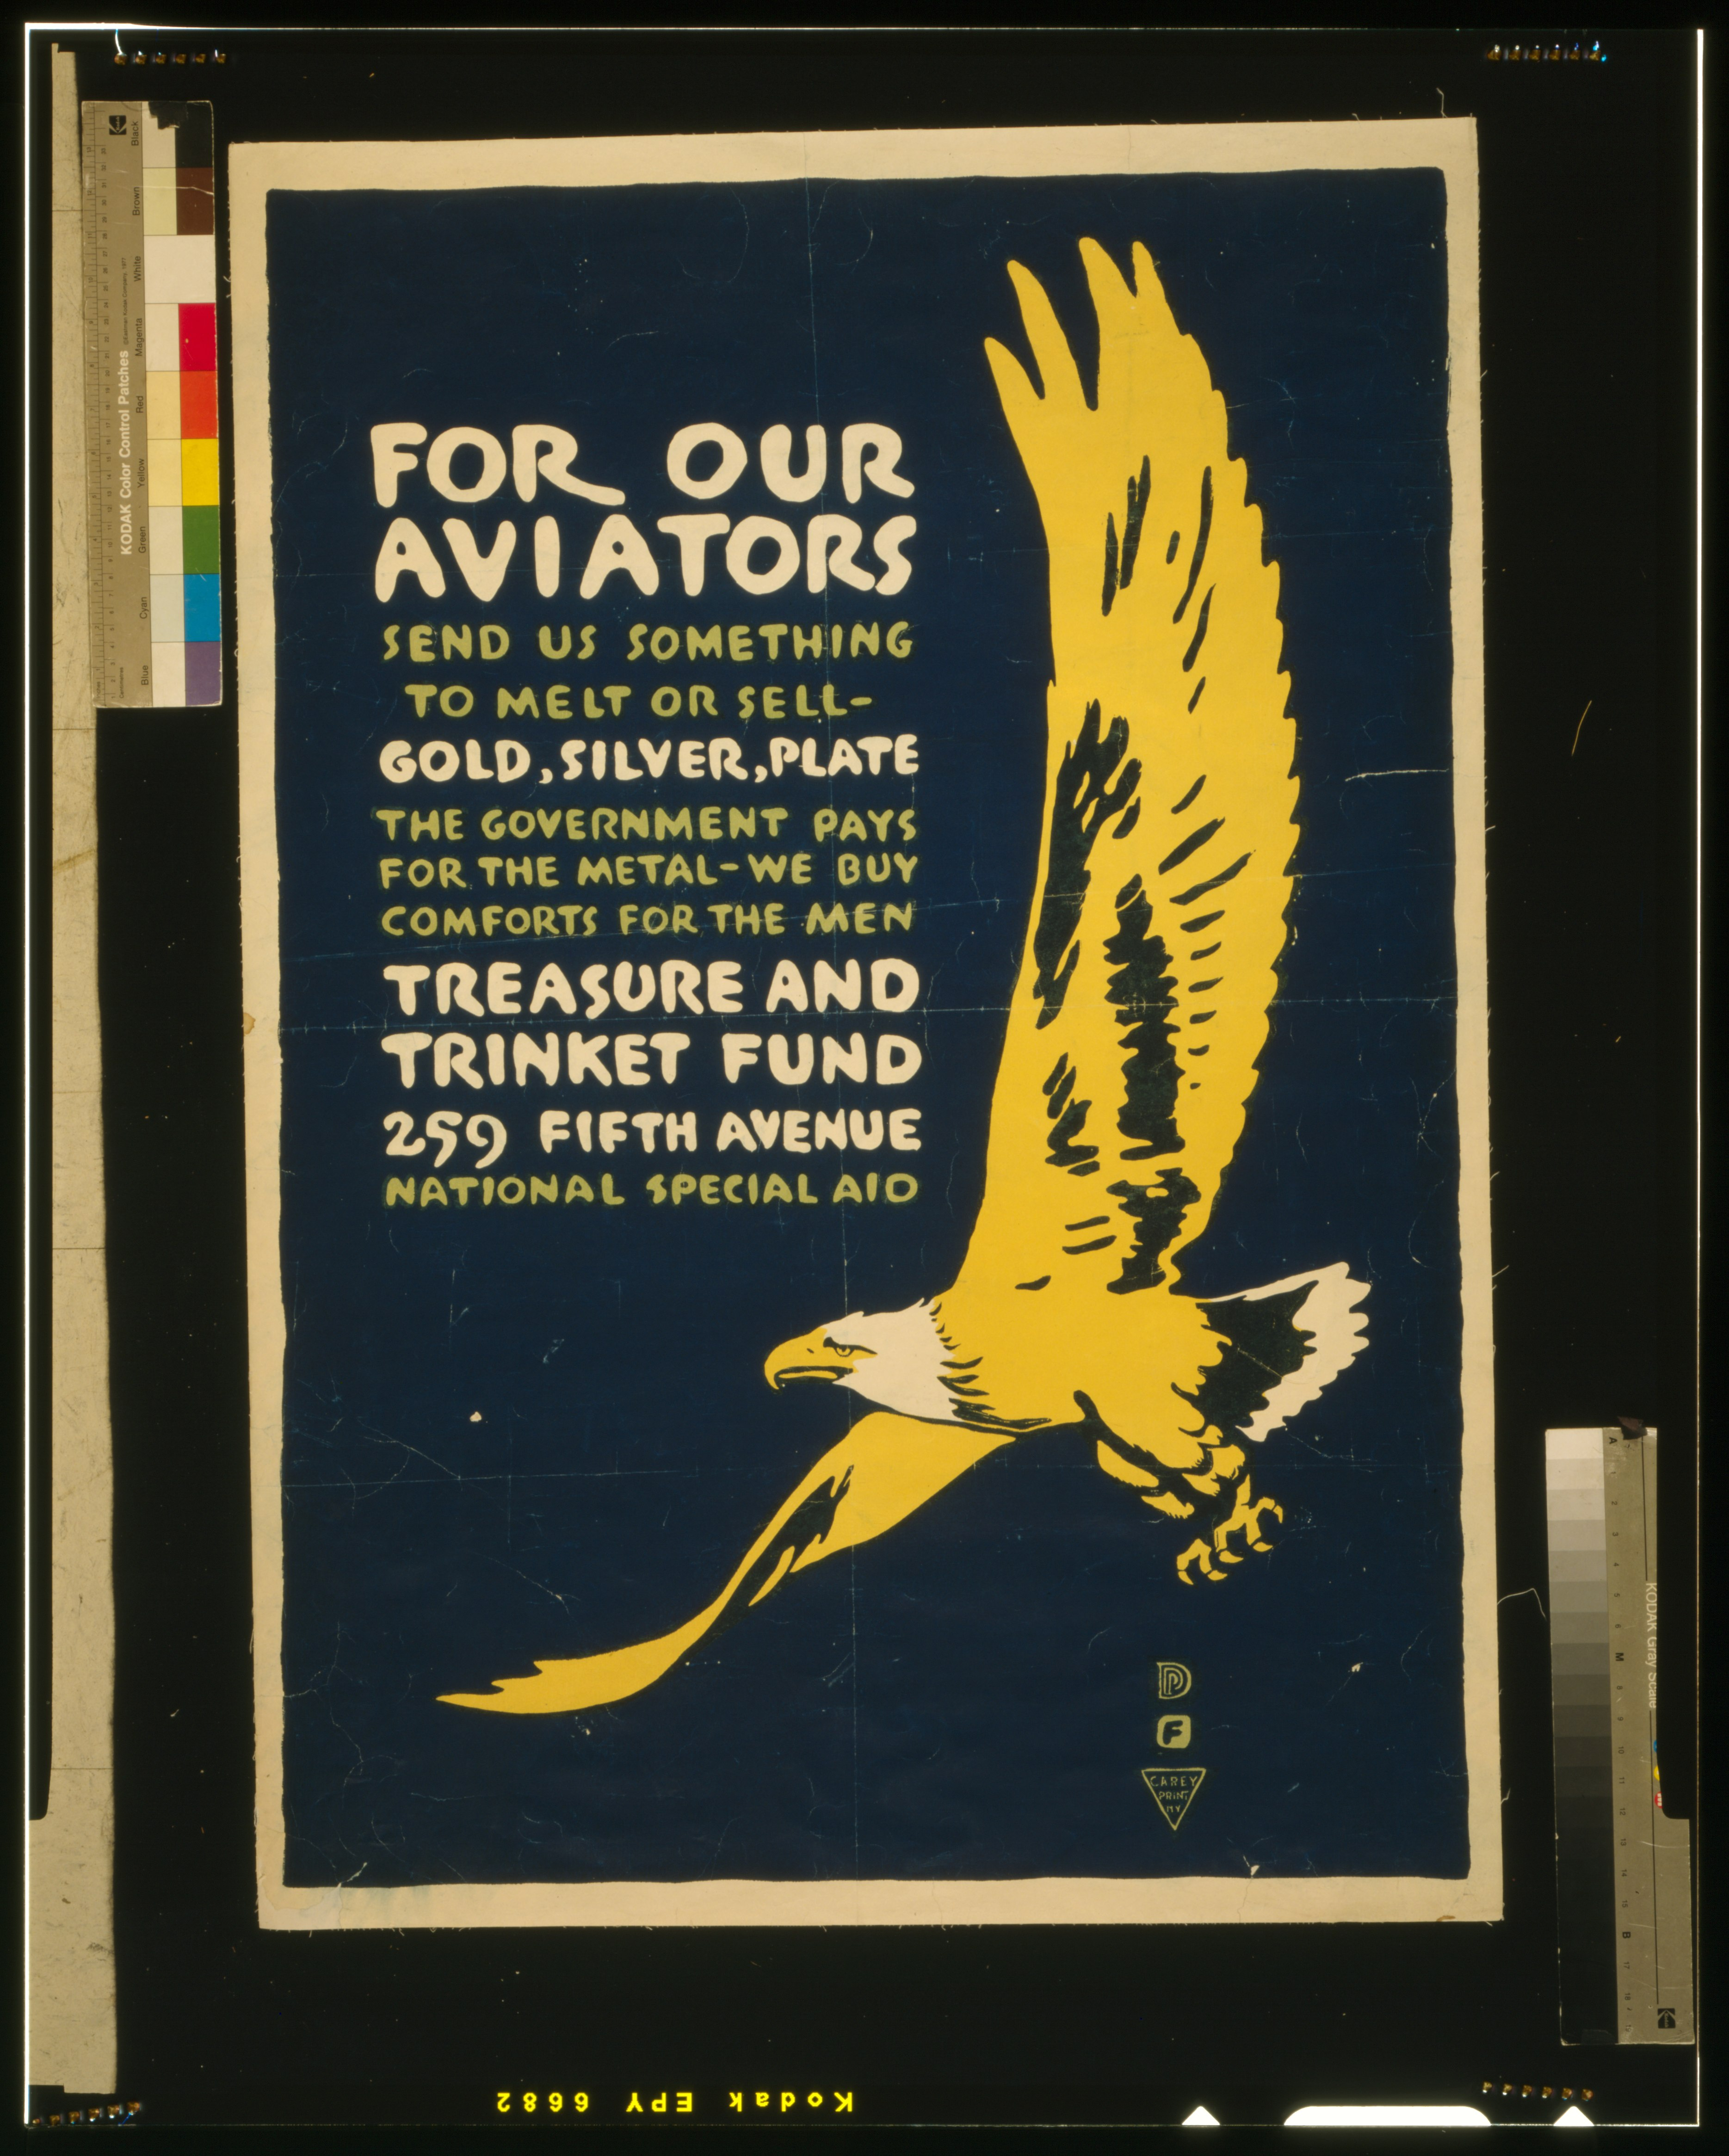 For our aviators-Send us something to melt or sell - gold, silver, plate LCCN2002709070